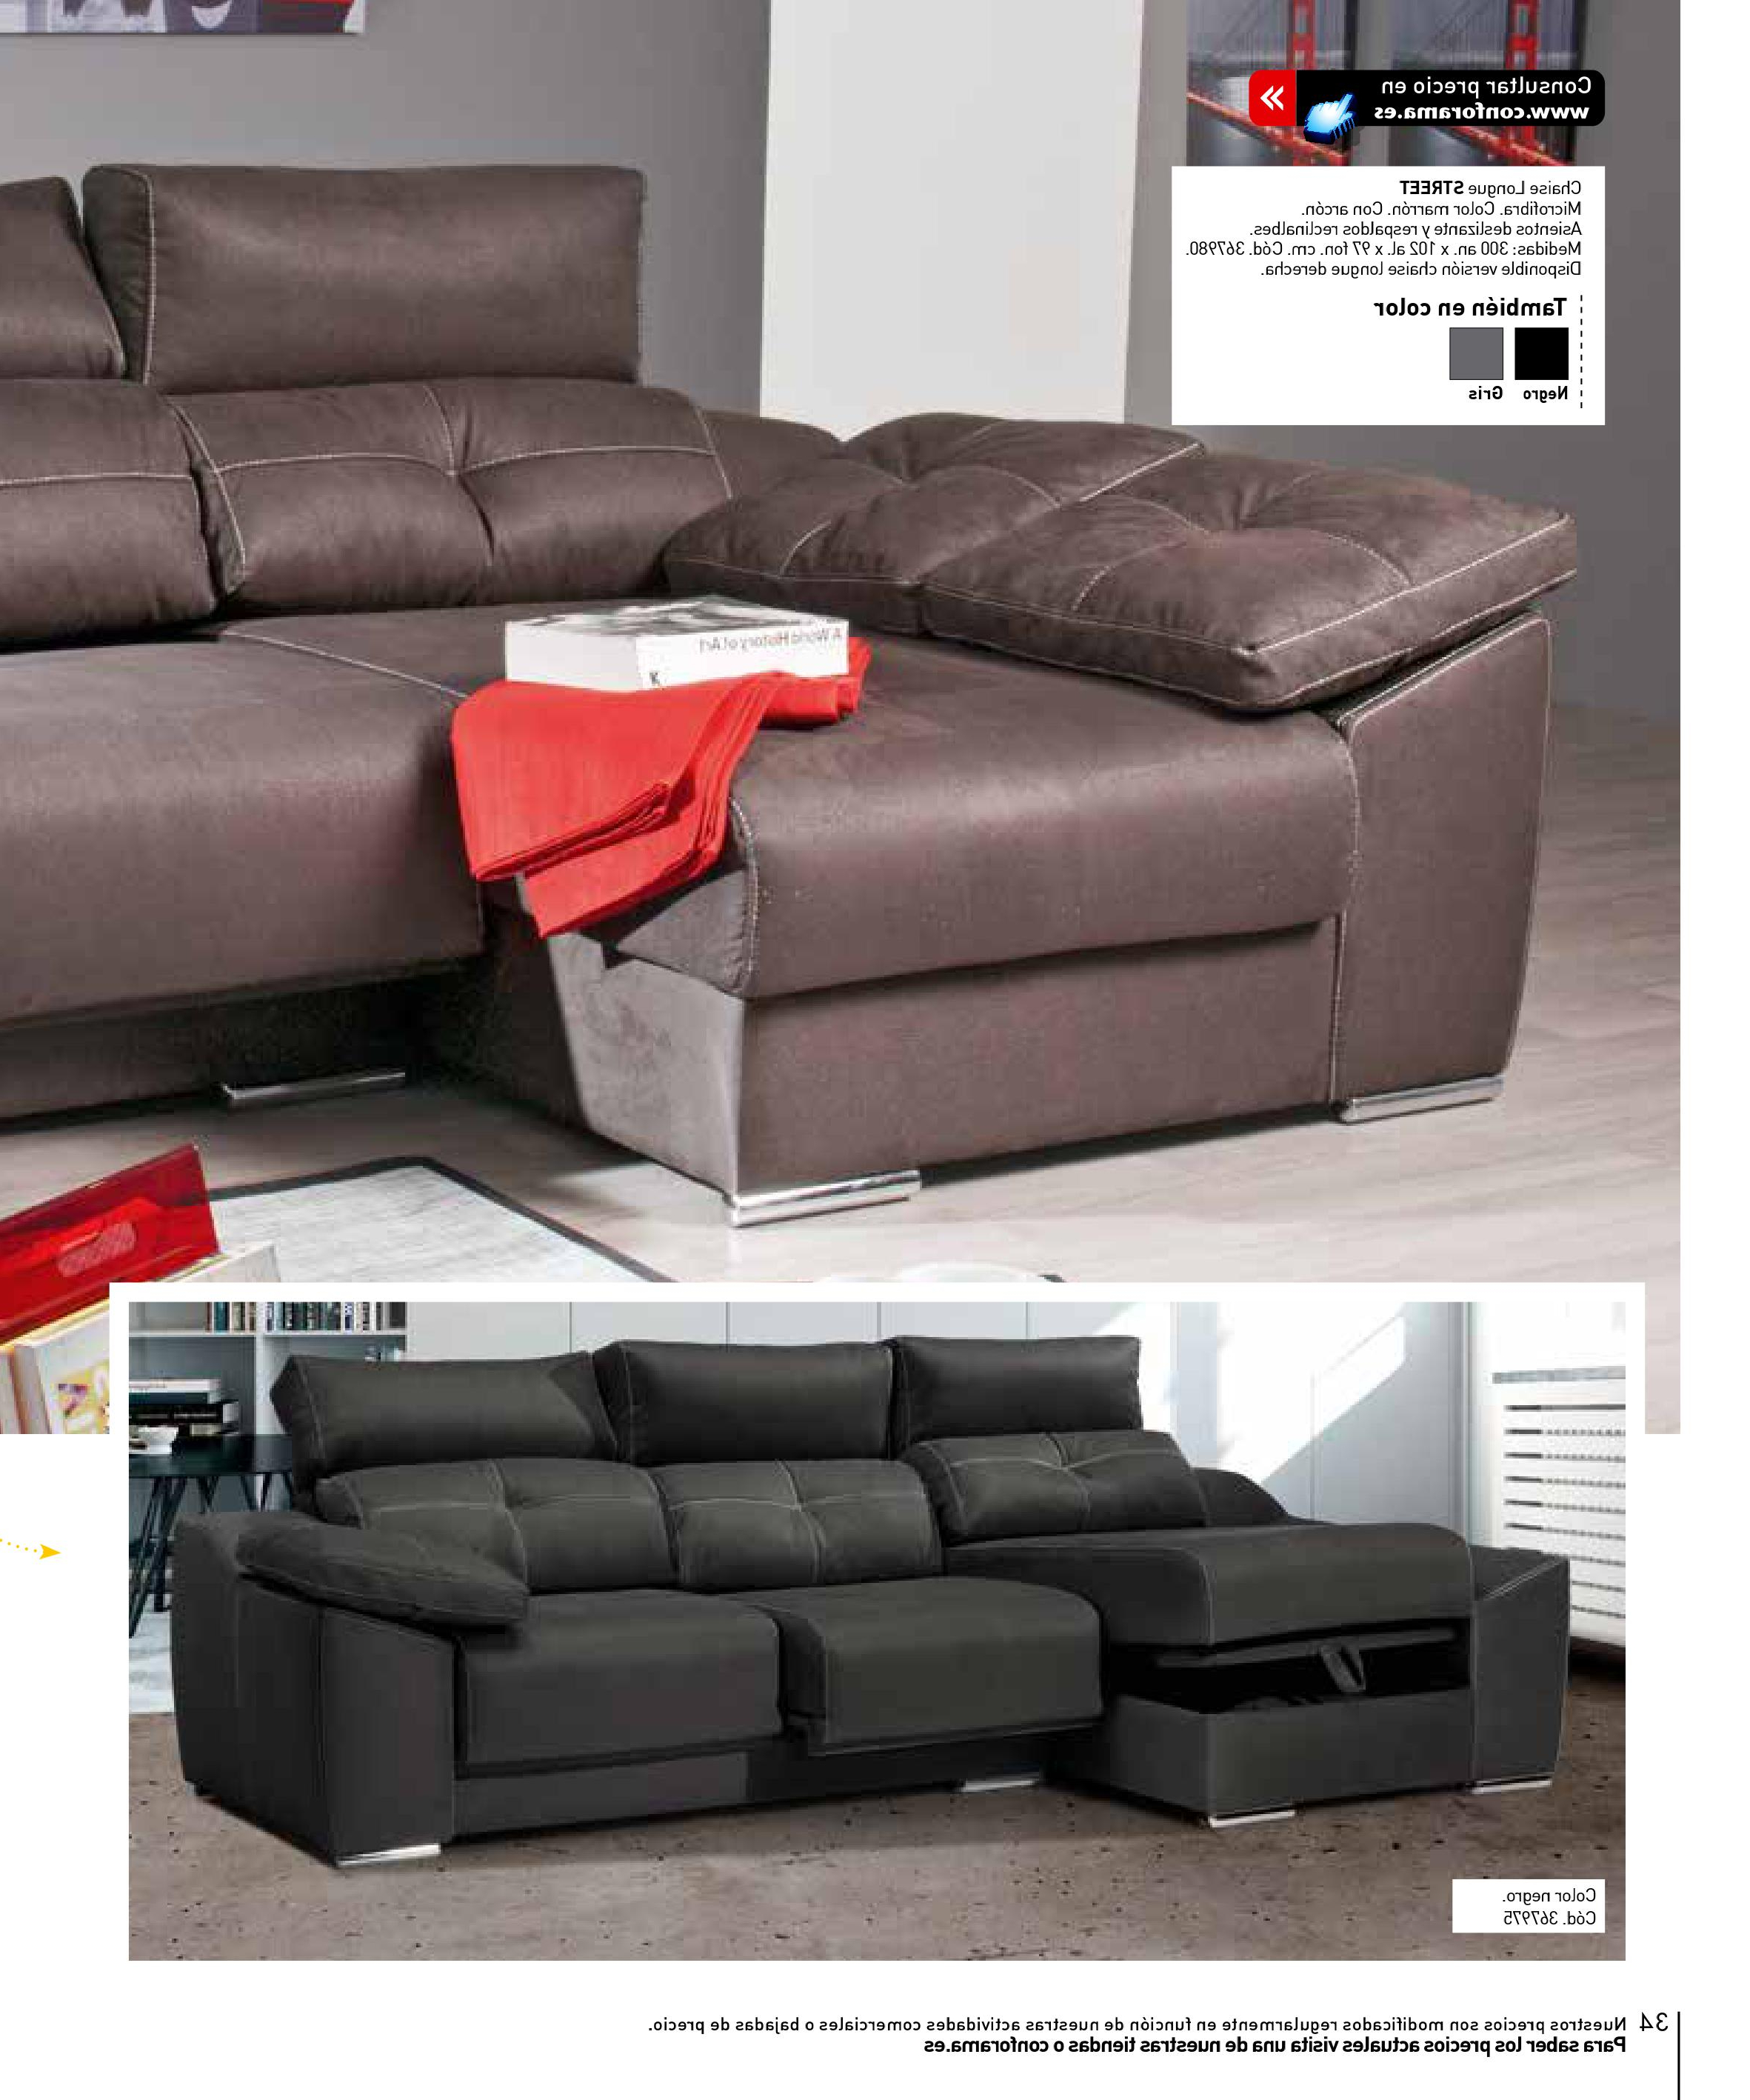 Sofas Conforama Catalogo T8dj Decorablog Revista De Decoracià N